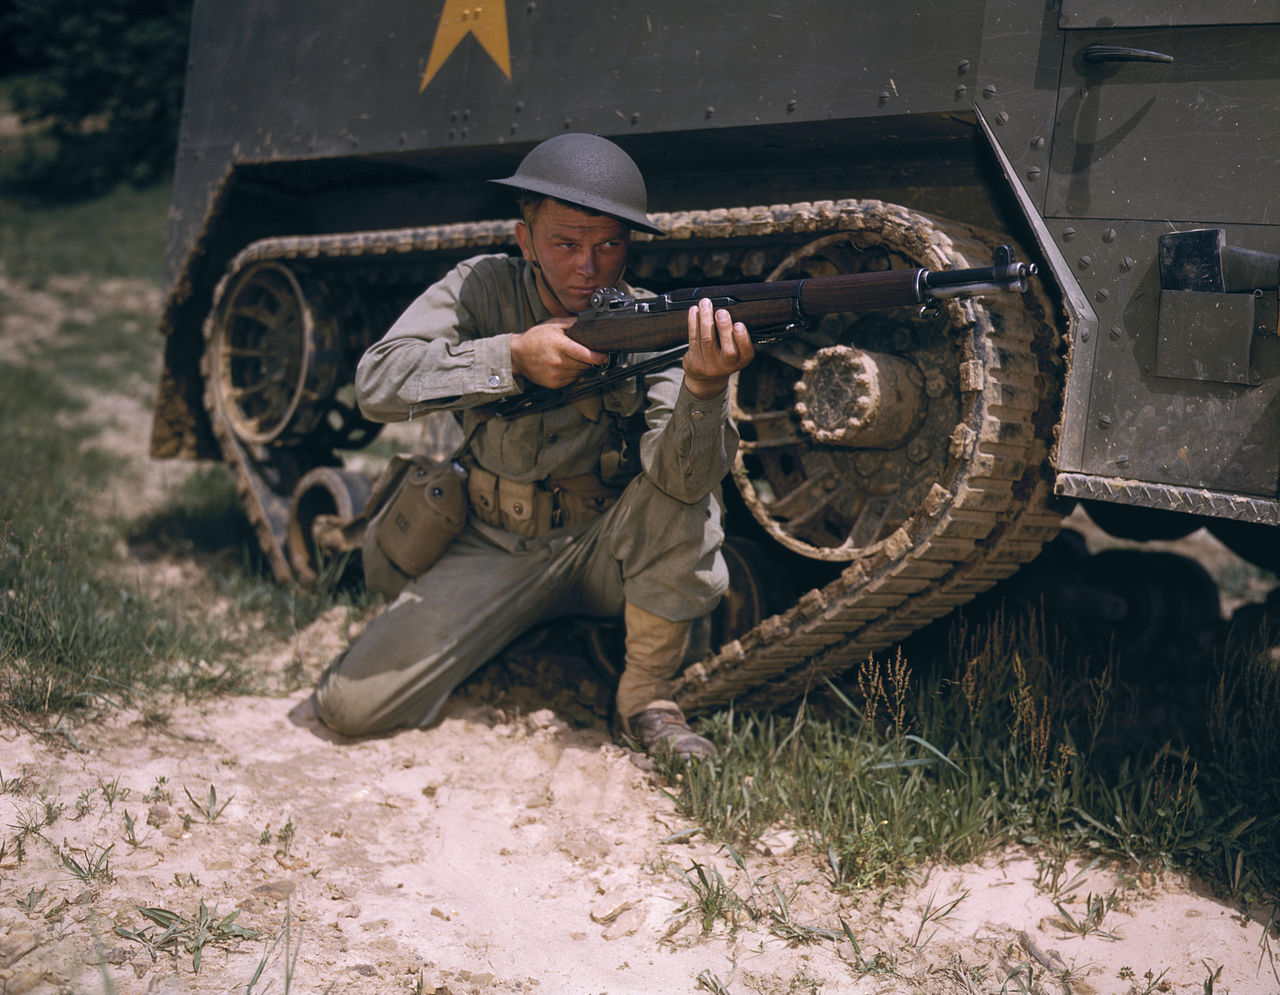 A young soldier of the armored forces holds and sights his Garand rifle like an old timer, 1942